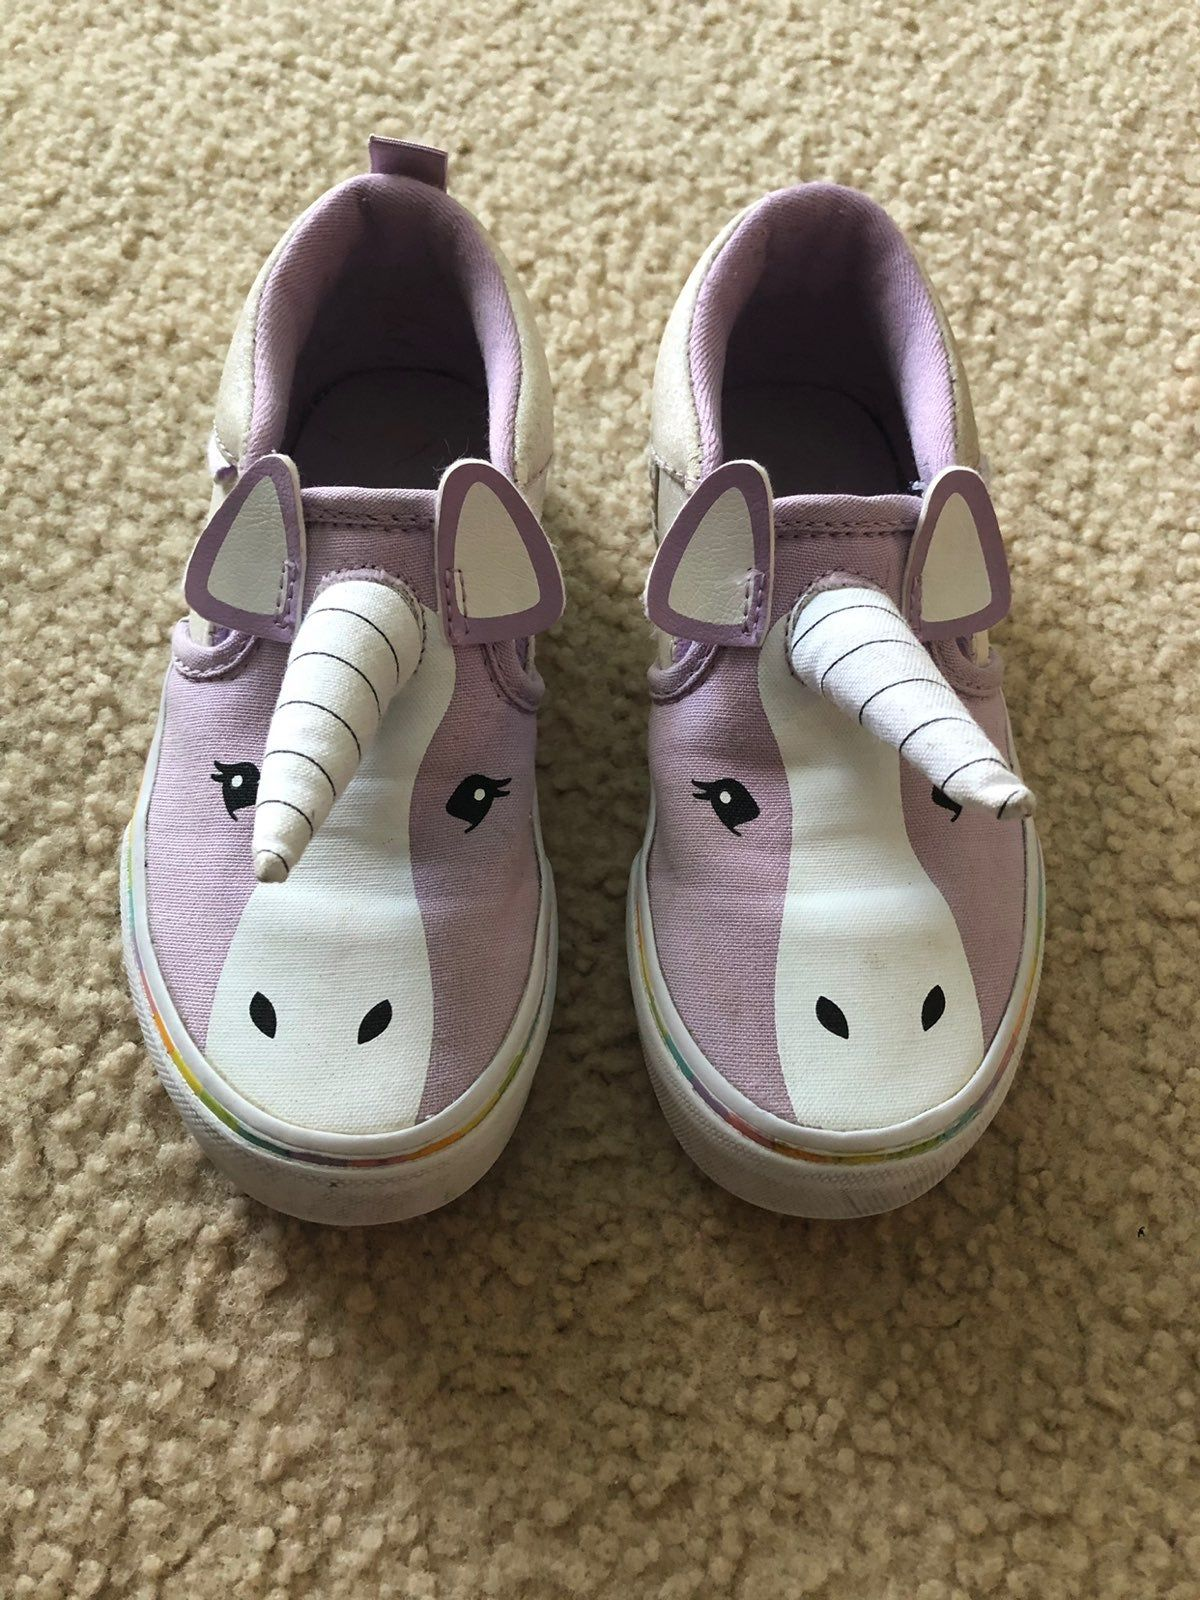 Girls Size 12 unicorn vans! These are